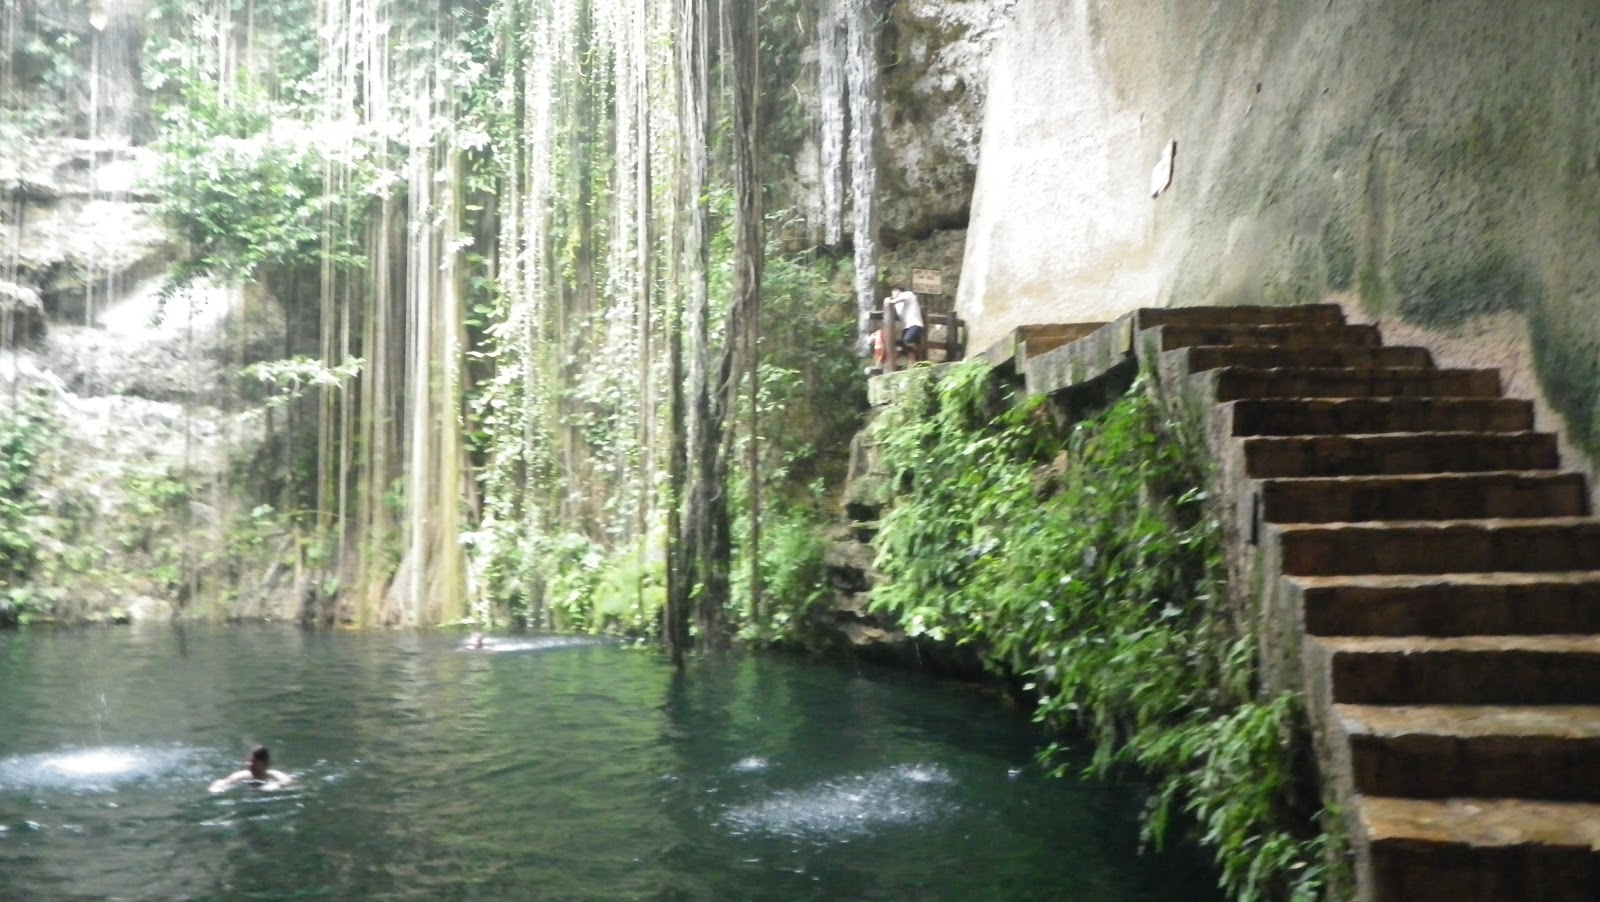 Ik Kil cenote Yucatn Mexico 10 Pic  Awesome Pictures